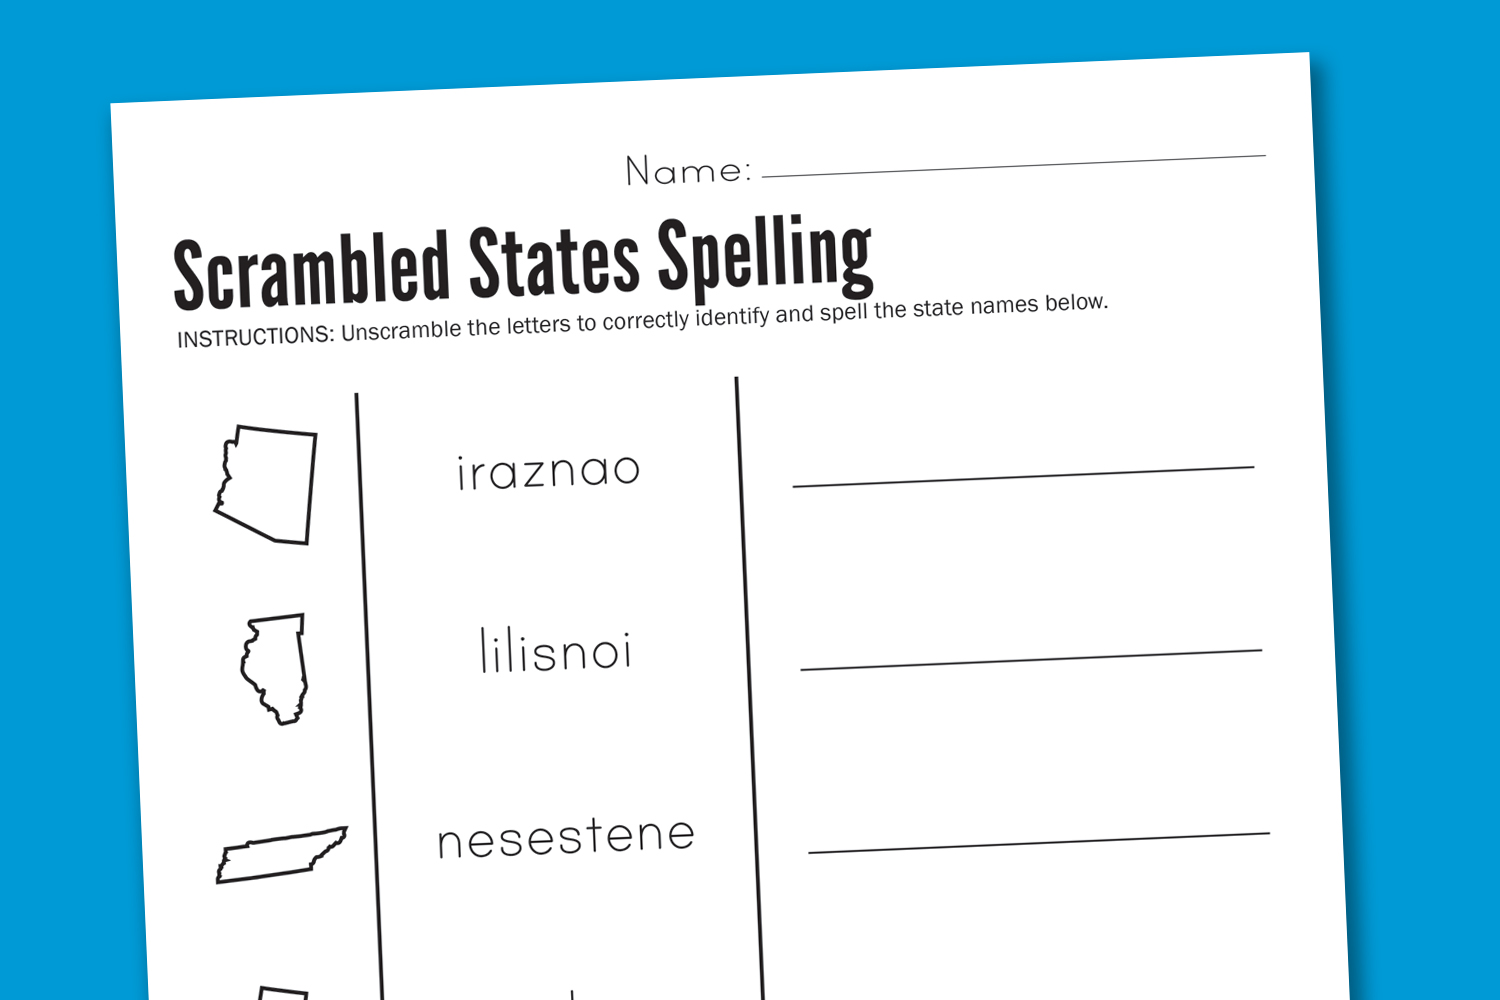 Worksheet Wednesday Scrambled States Spelling